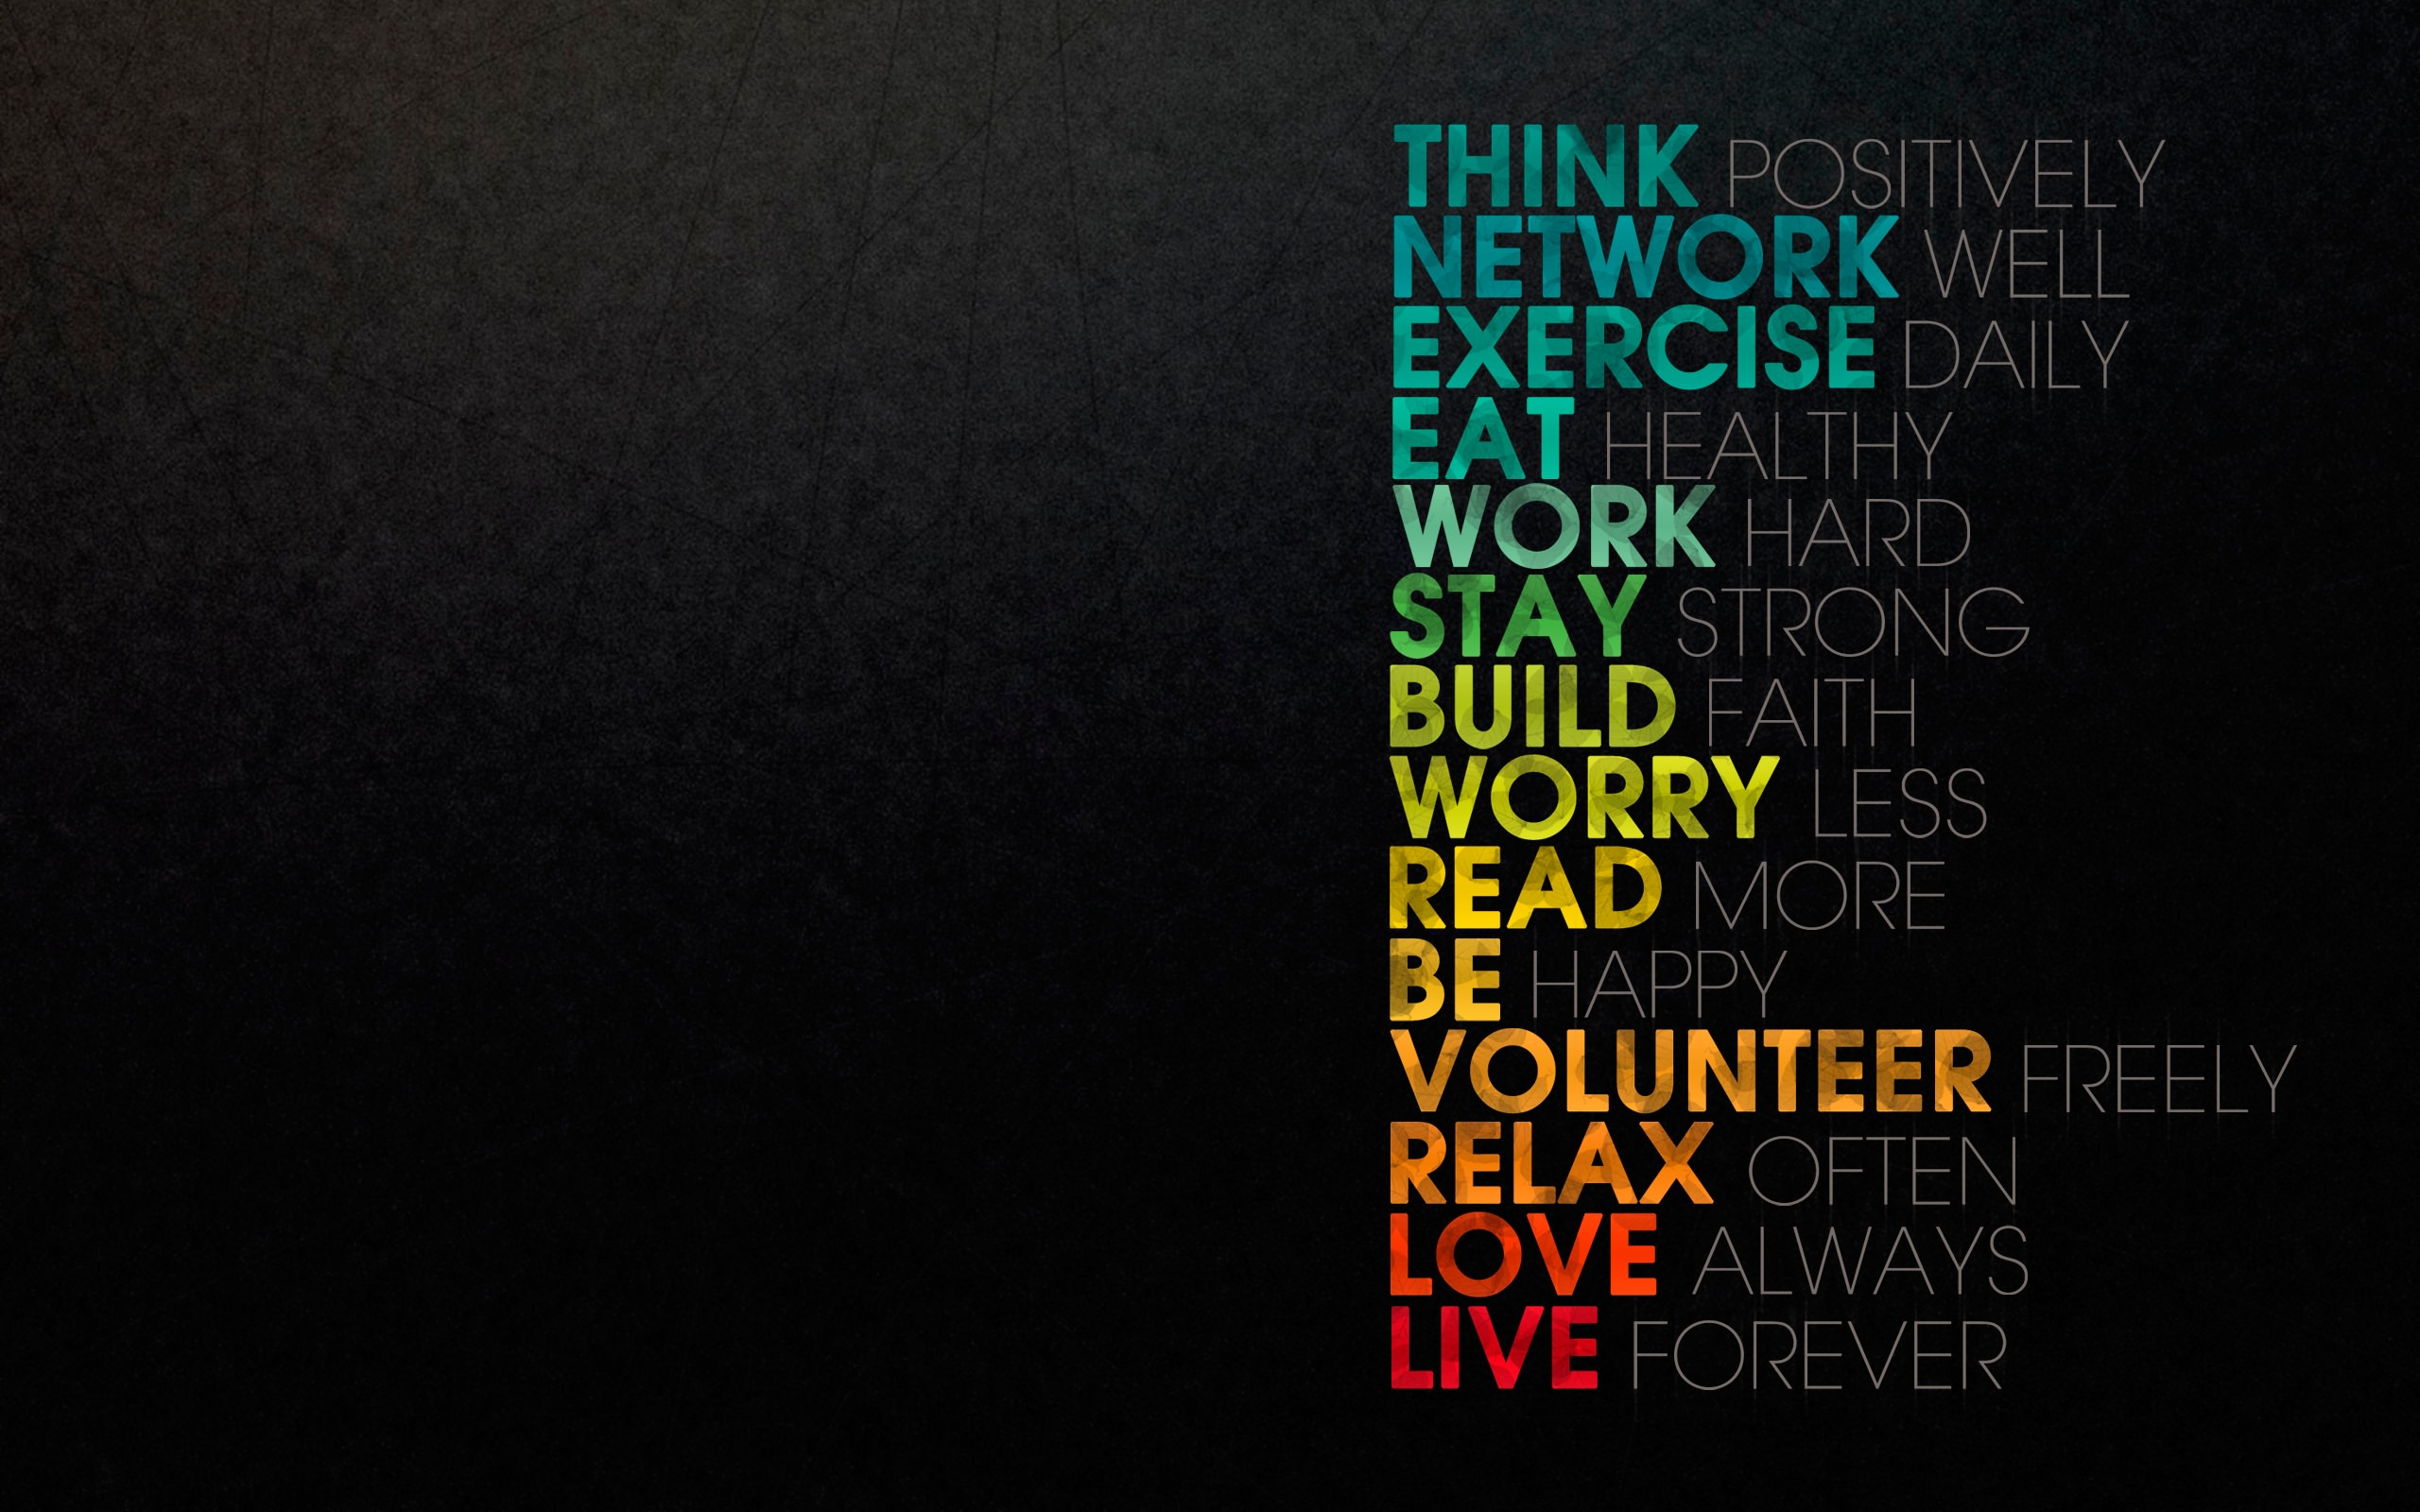 Hd wallpaper quotes for android - Inspirational Typography Hd Wallpapers For Desktop Iphone And Android